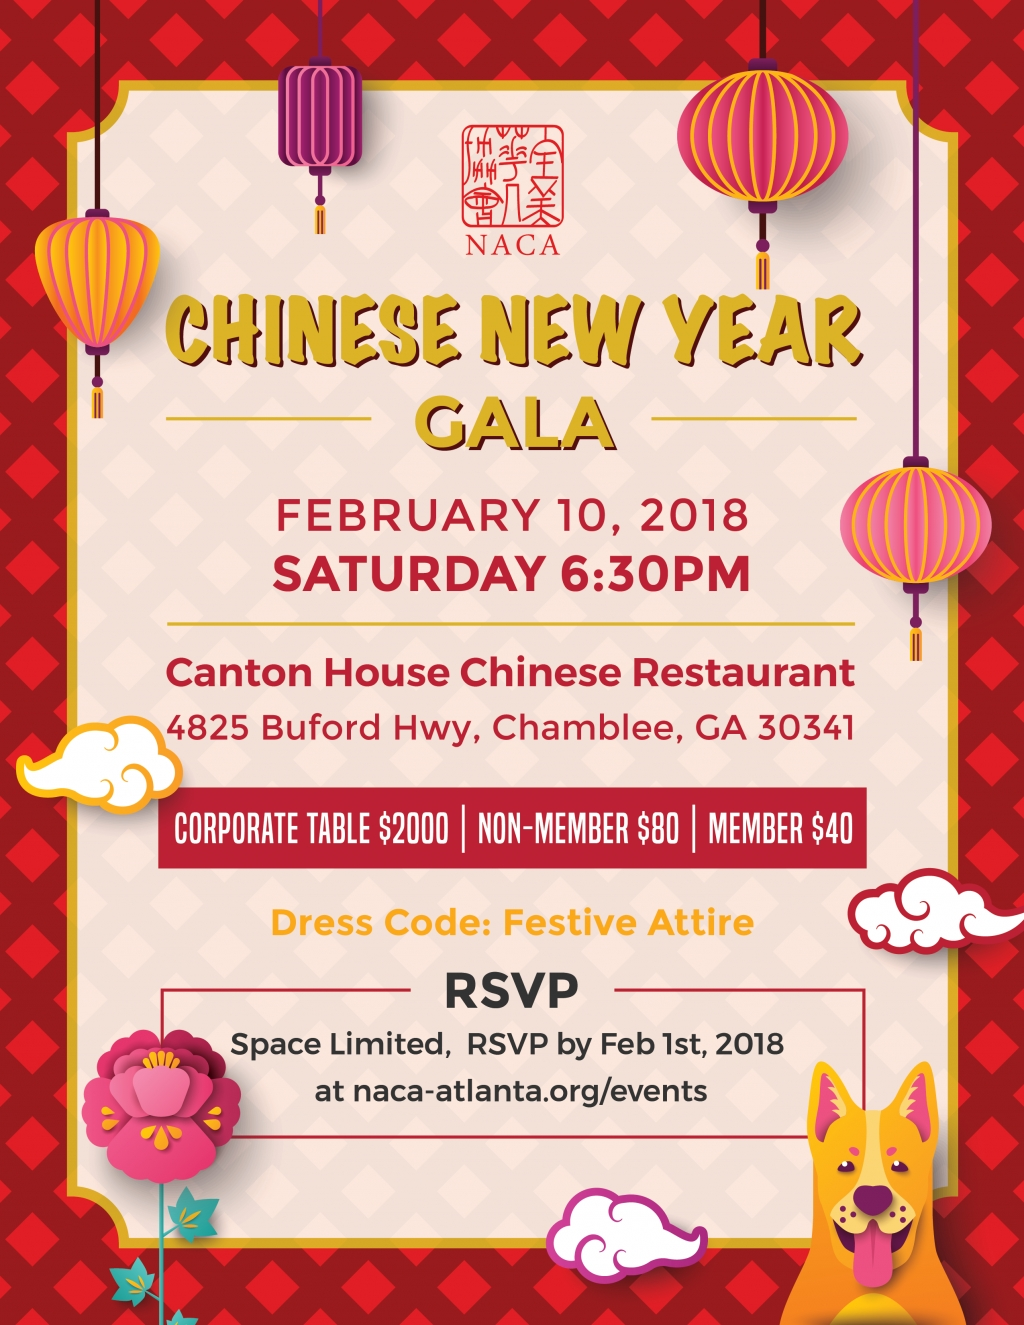 Naca Chinese New Year Gala